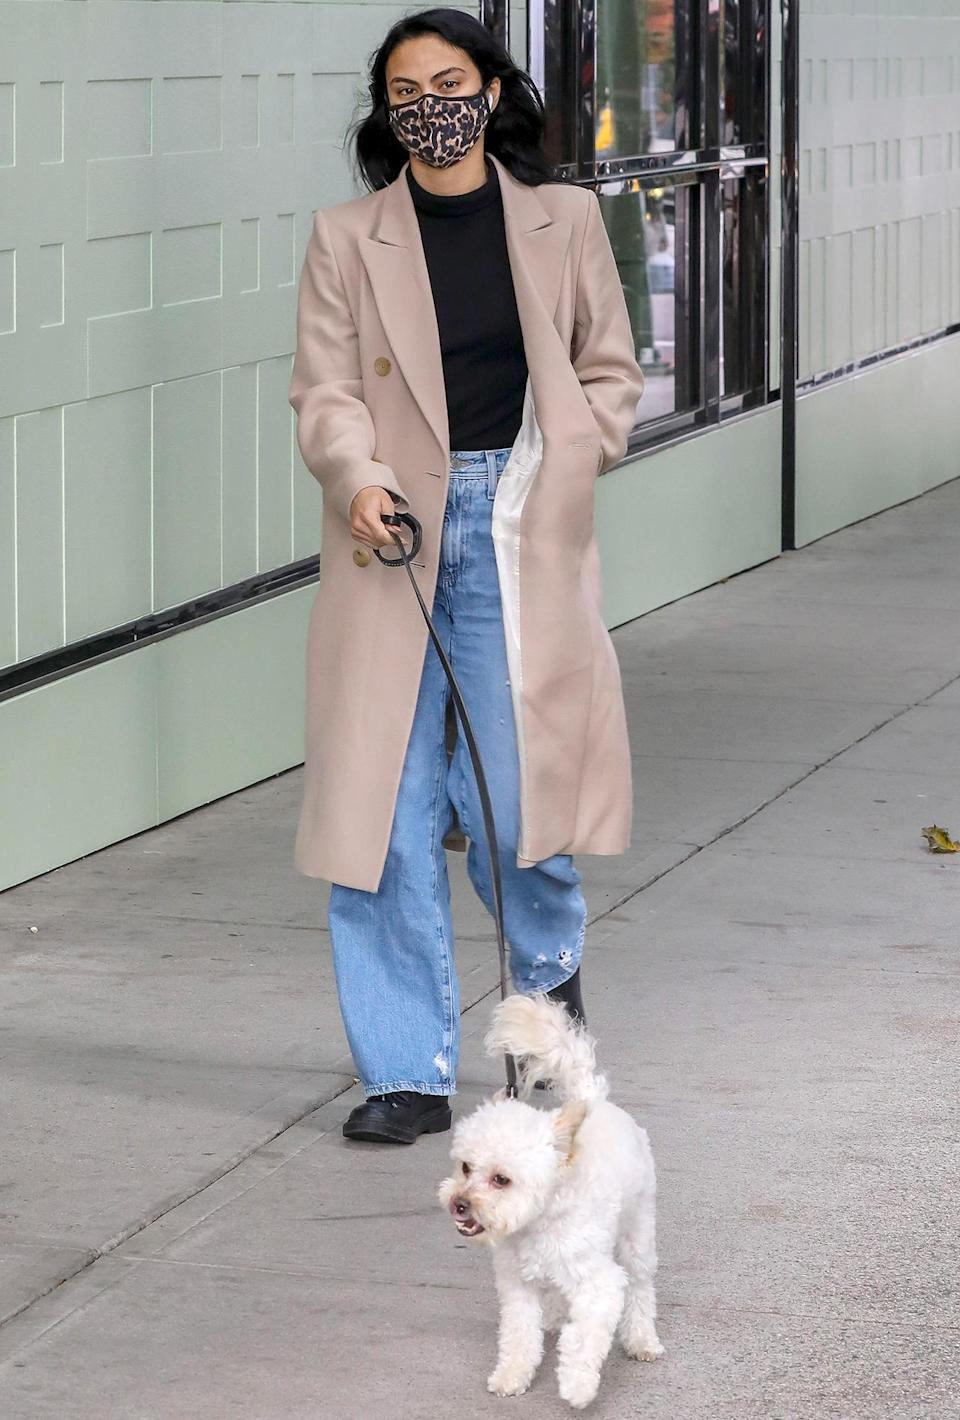 <p>Camila Mendes takes a walk with her pup in Vancouver, Canada on Wednesday. </p>